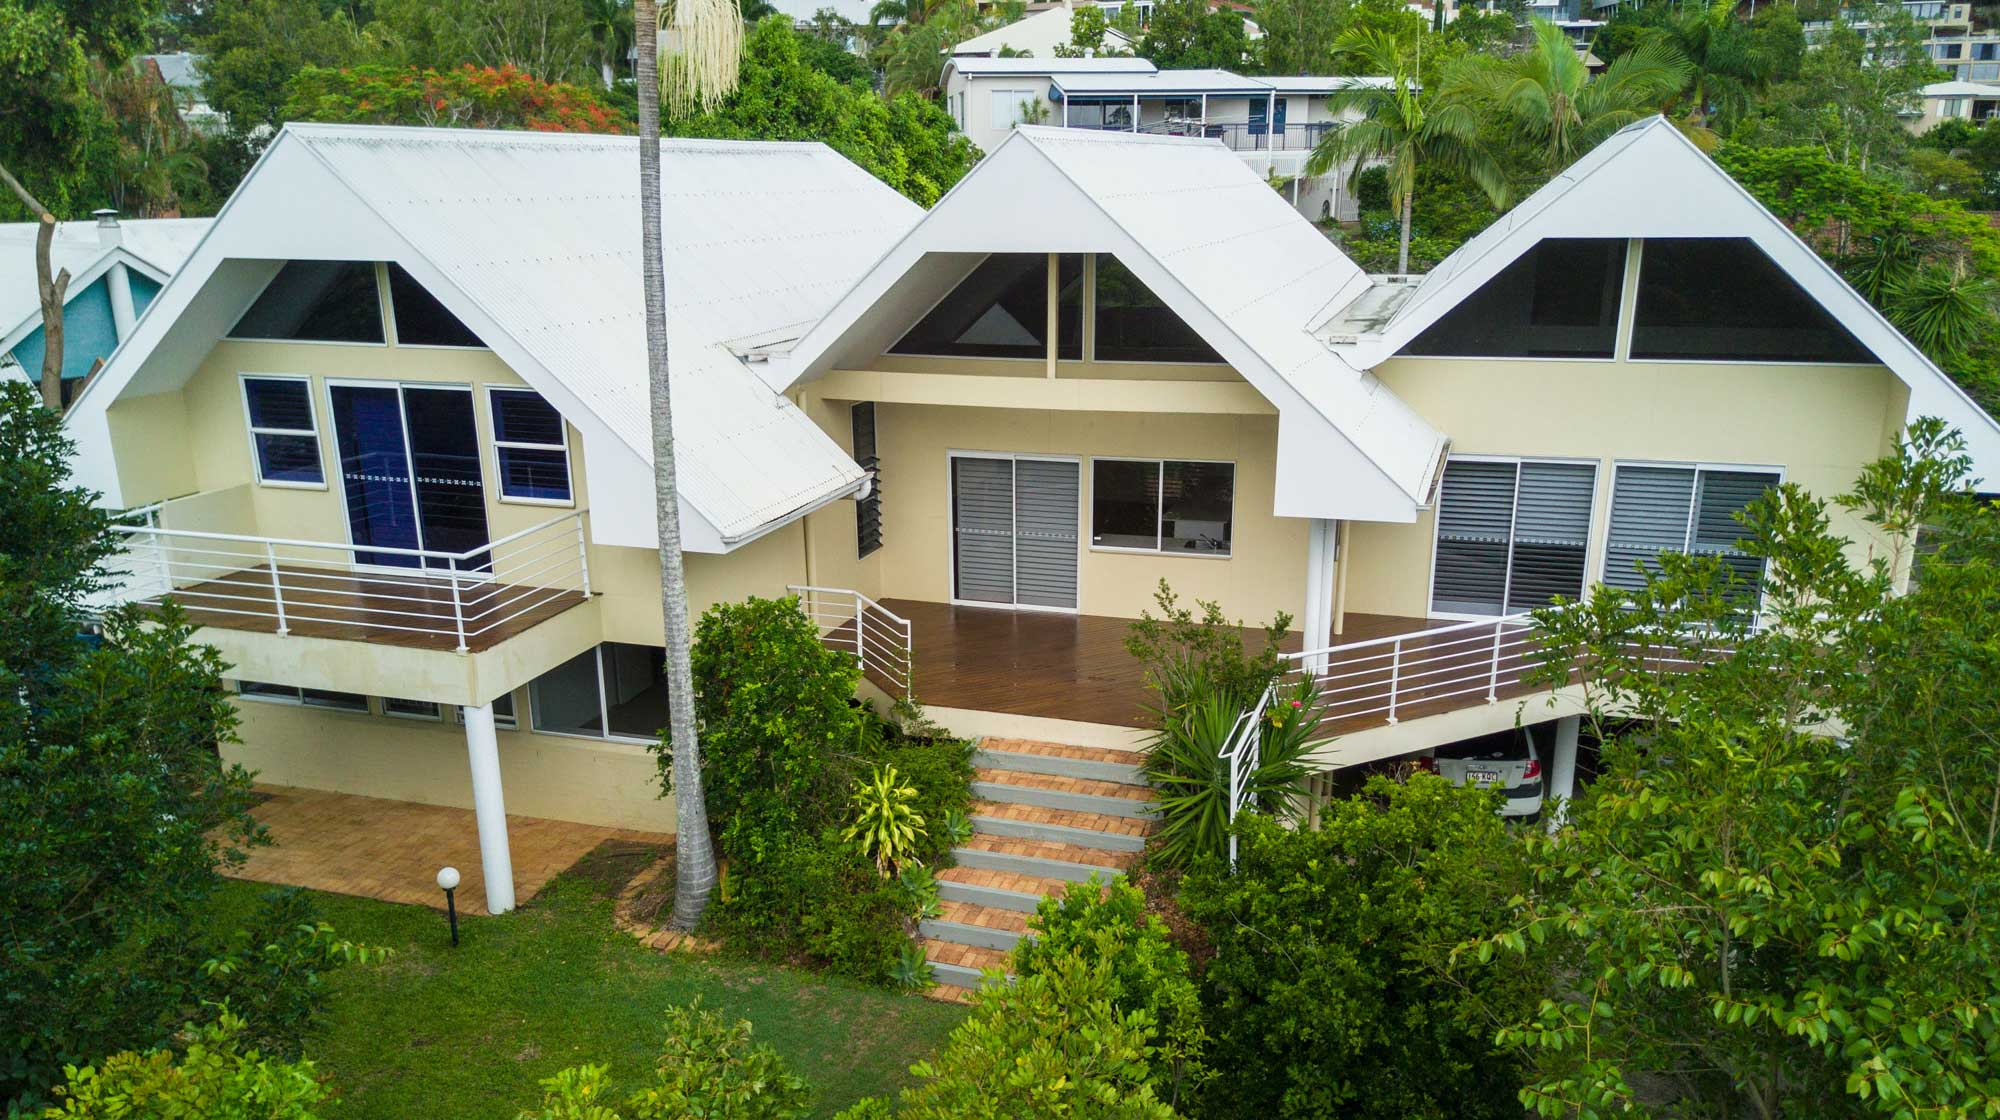 Aerial drone photography Brisbane real estate. DroneAce captures image of home for sale in Bardon, Brisbane